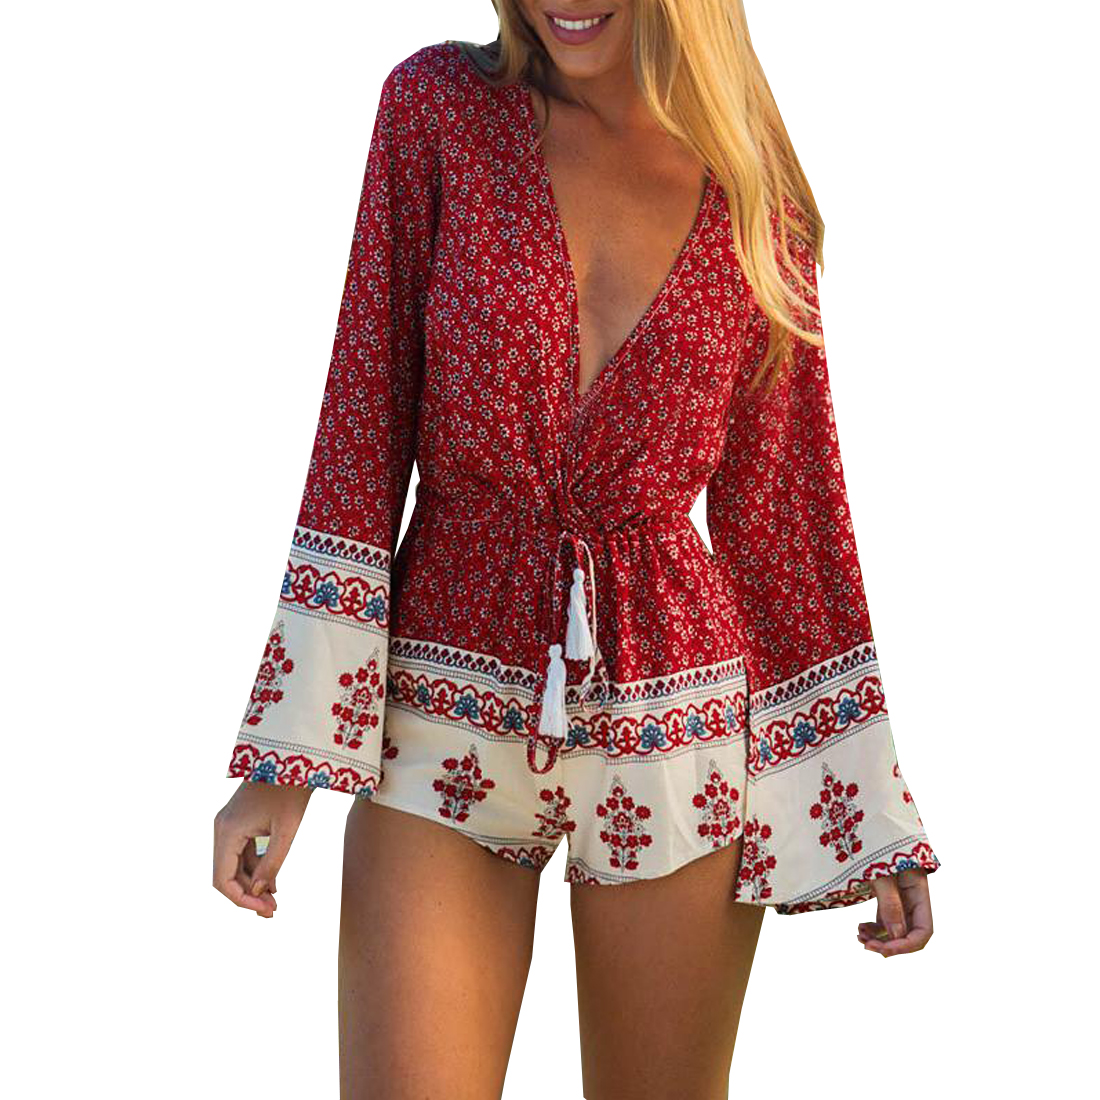 2017 Boho Red Floral Print Fringe Playsuits Women Elegant Summer V Neck   Jumpsuits   Rompers Sexy Beach Girls Short Overalls